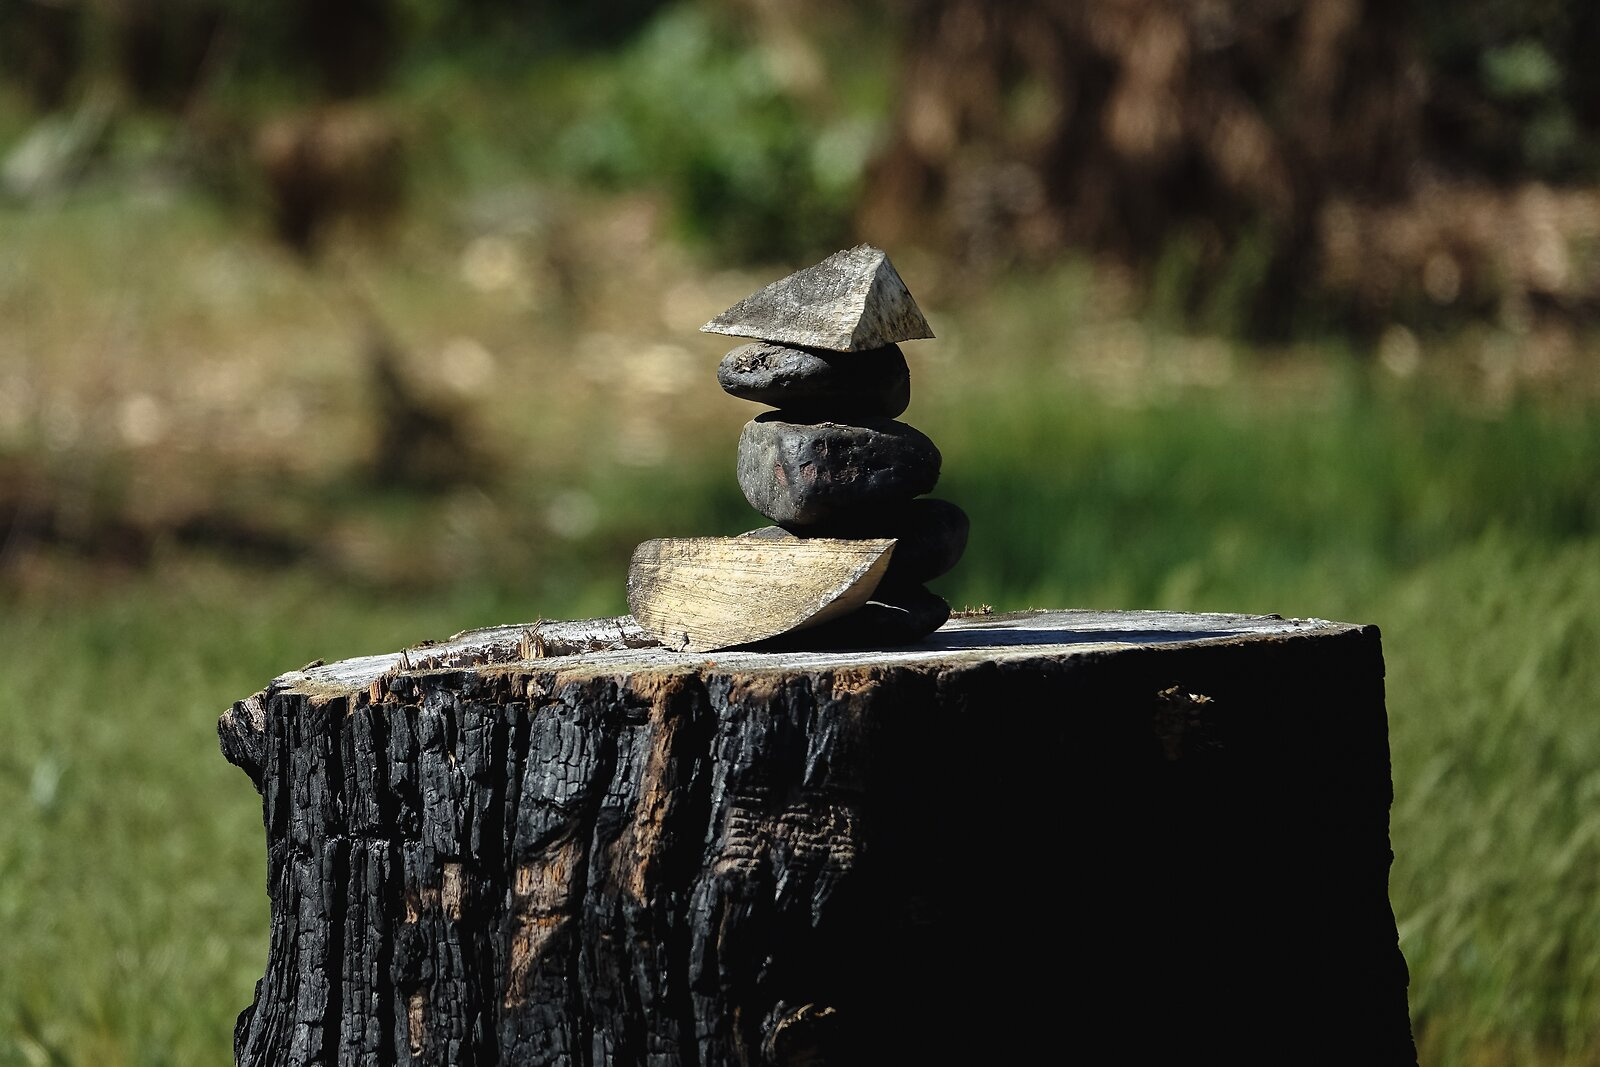 RX10_Apr17_21_stones_on_tree_stump#1.jpg